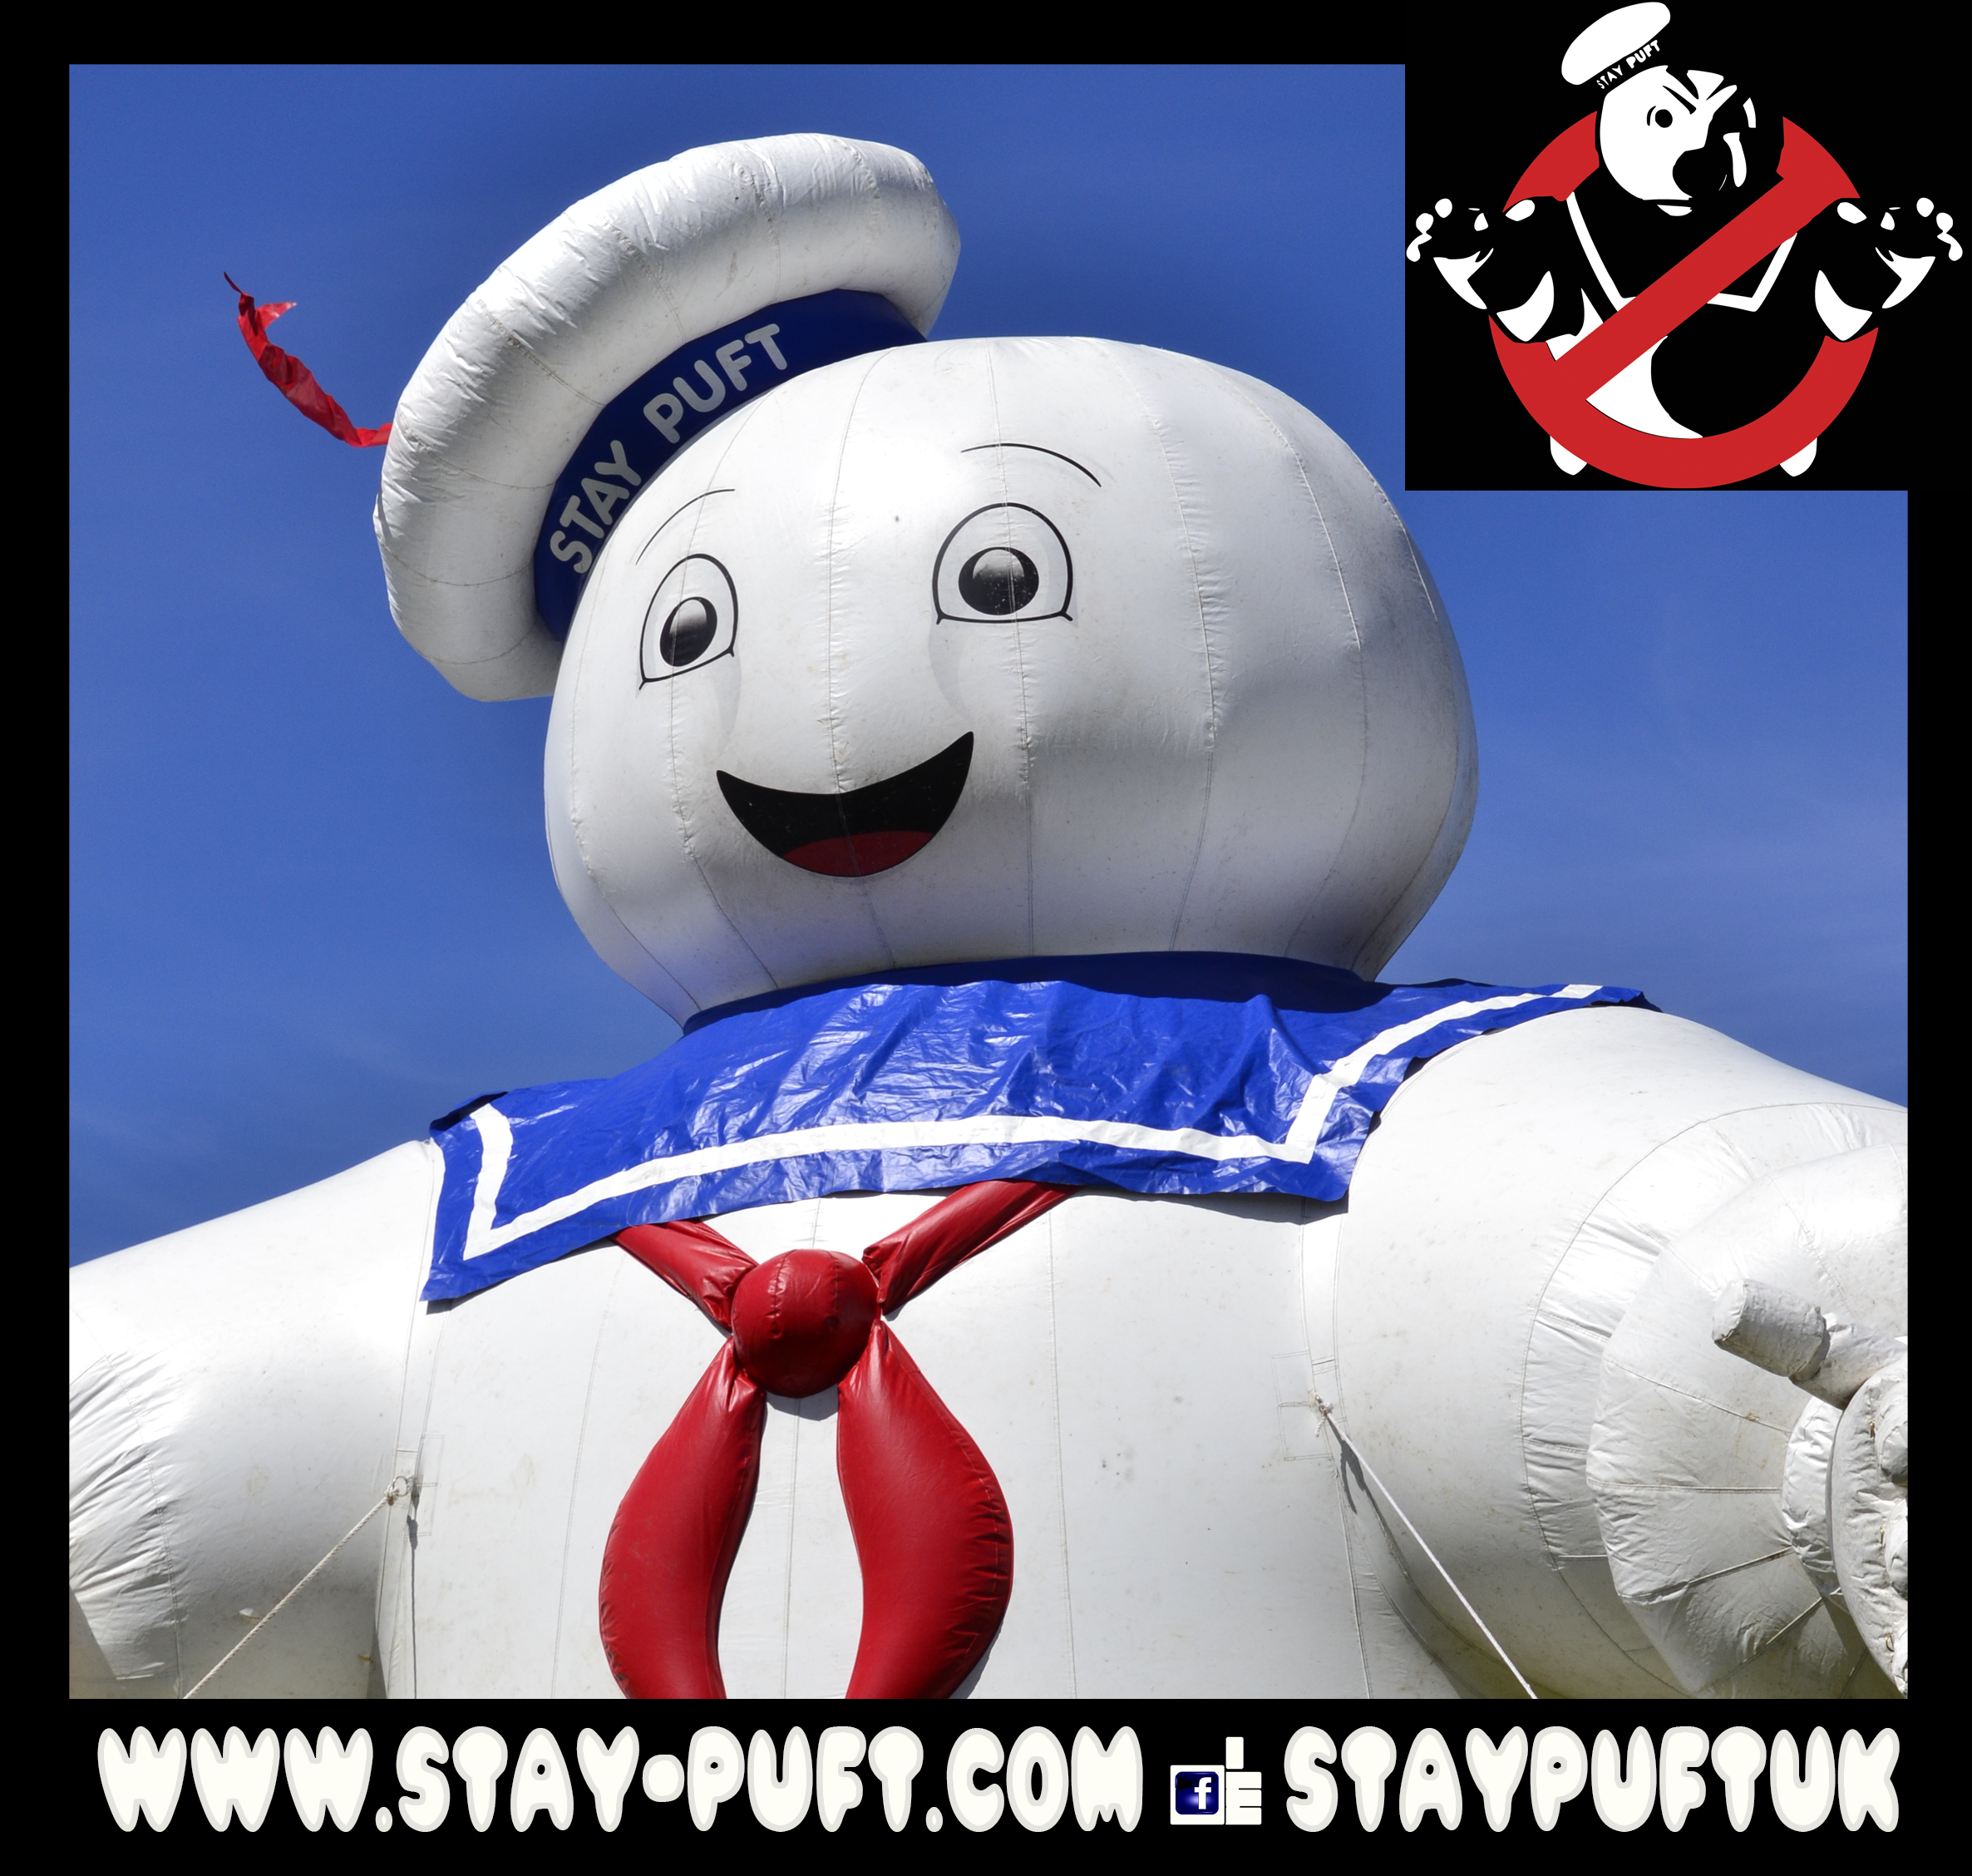 STAY PUFT UK